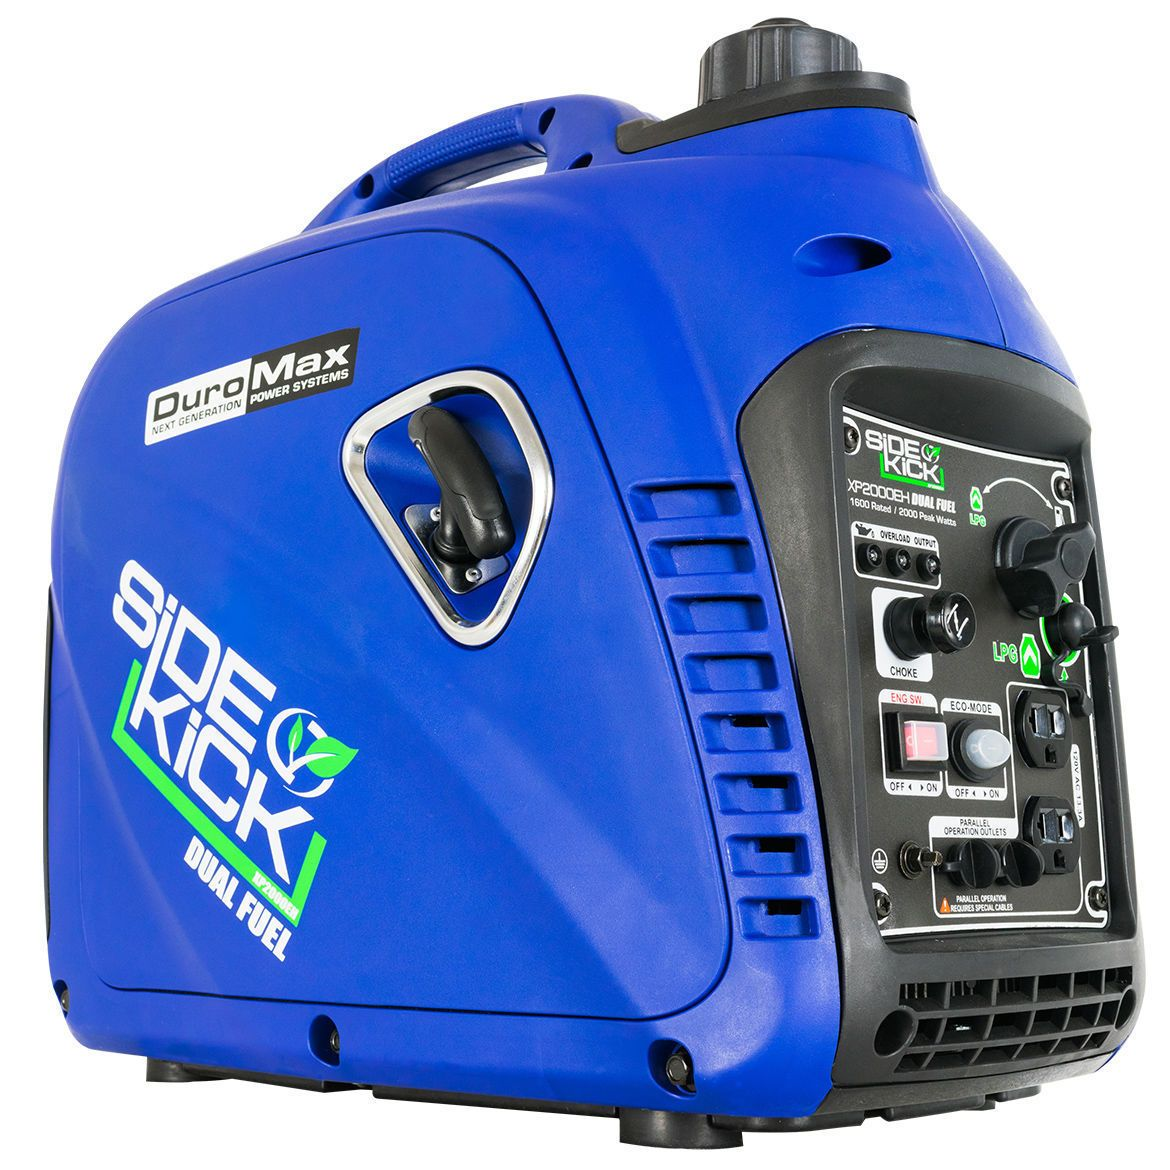 Duromax Xp2000eh 2000w Dual Fuel Inverter Generator Free Shipping To Puerto Rico Portable Inverter Generator Dual Fuel Generator Portable Generator